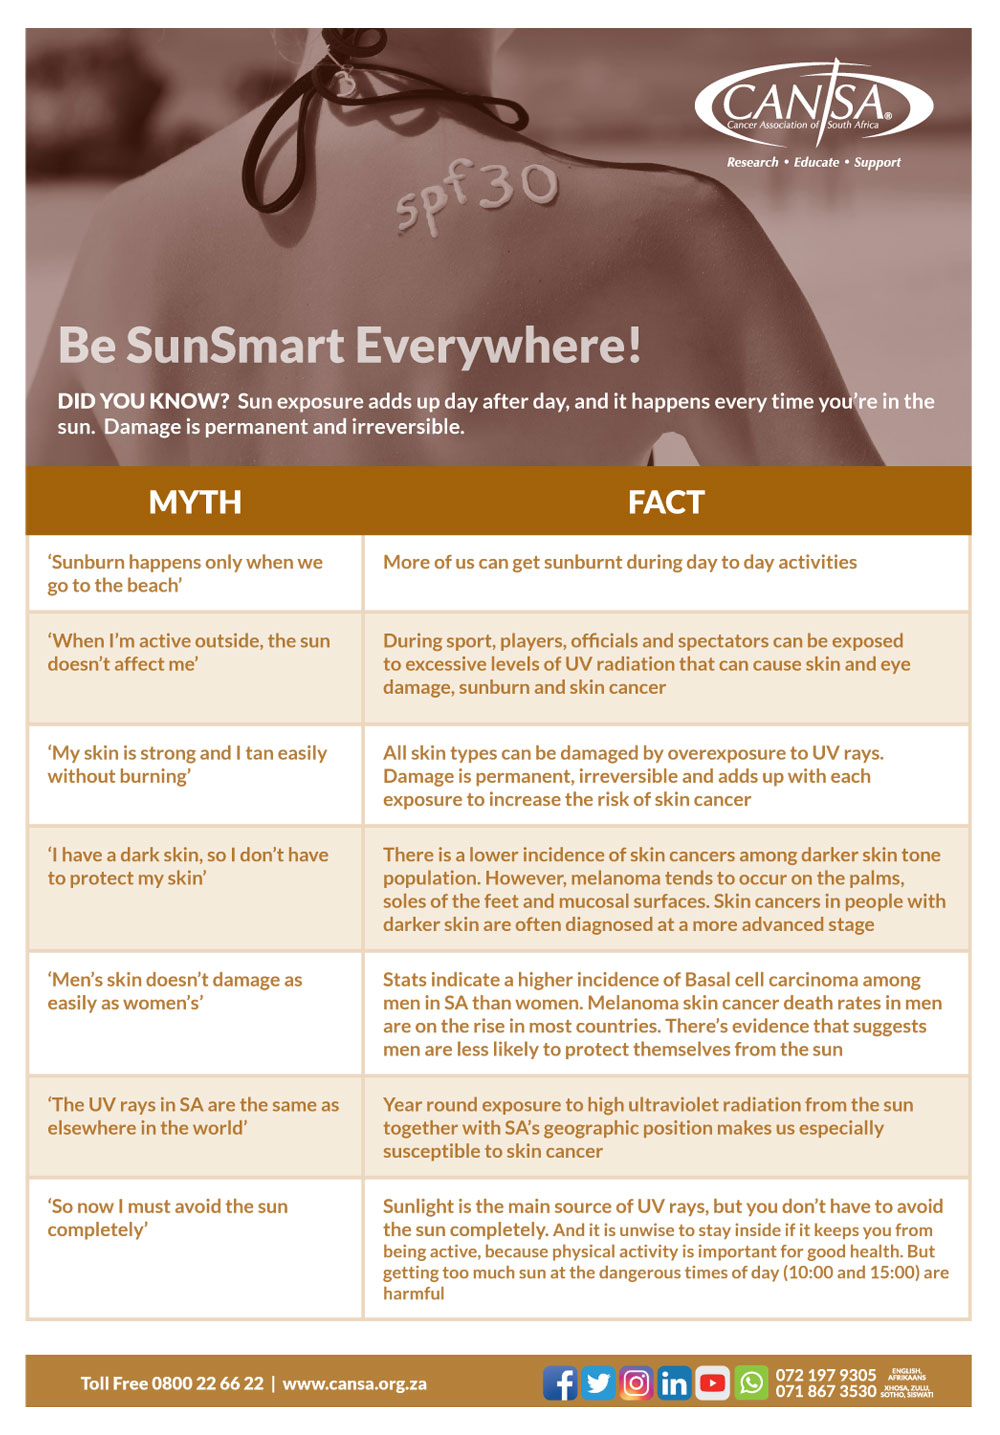 Be SunSmart Everywhere | CANSA - The Cancer Association of